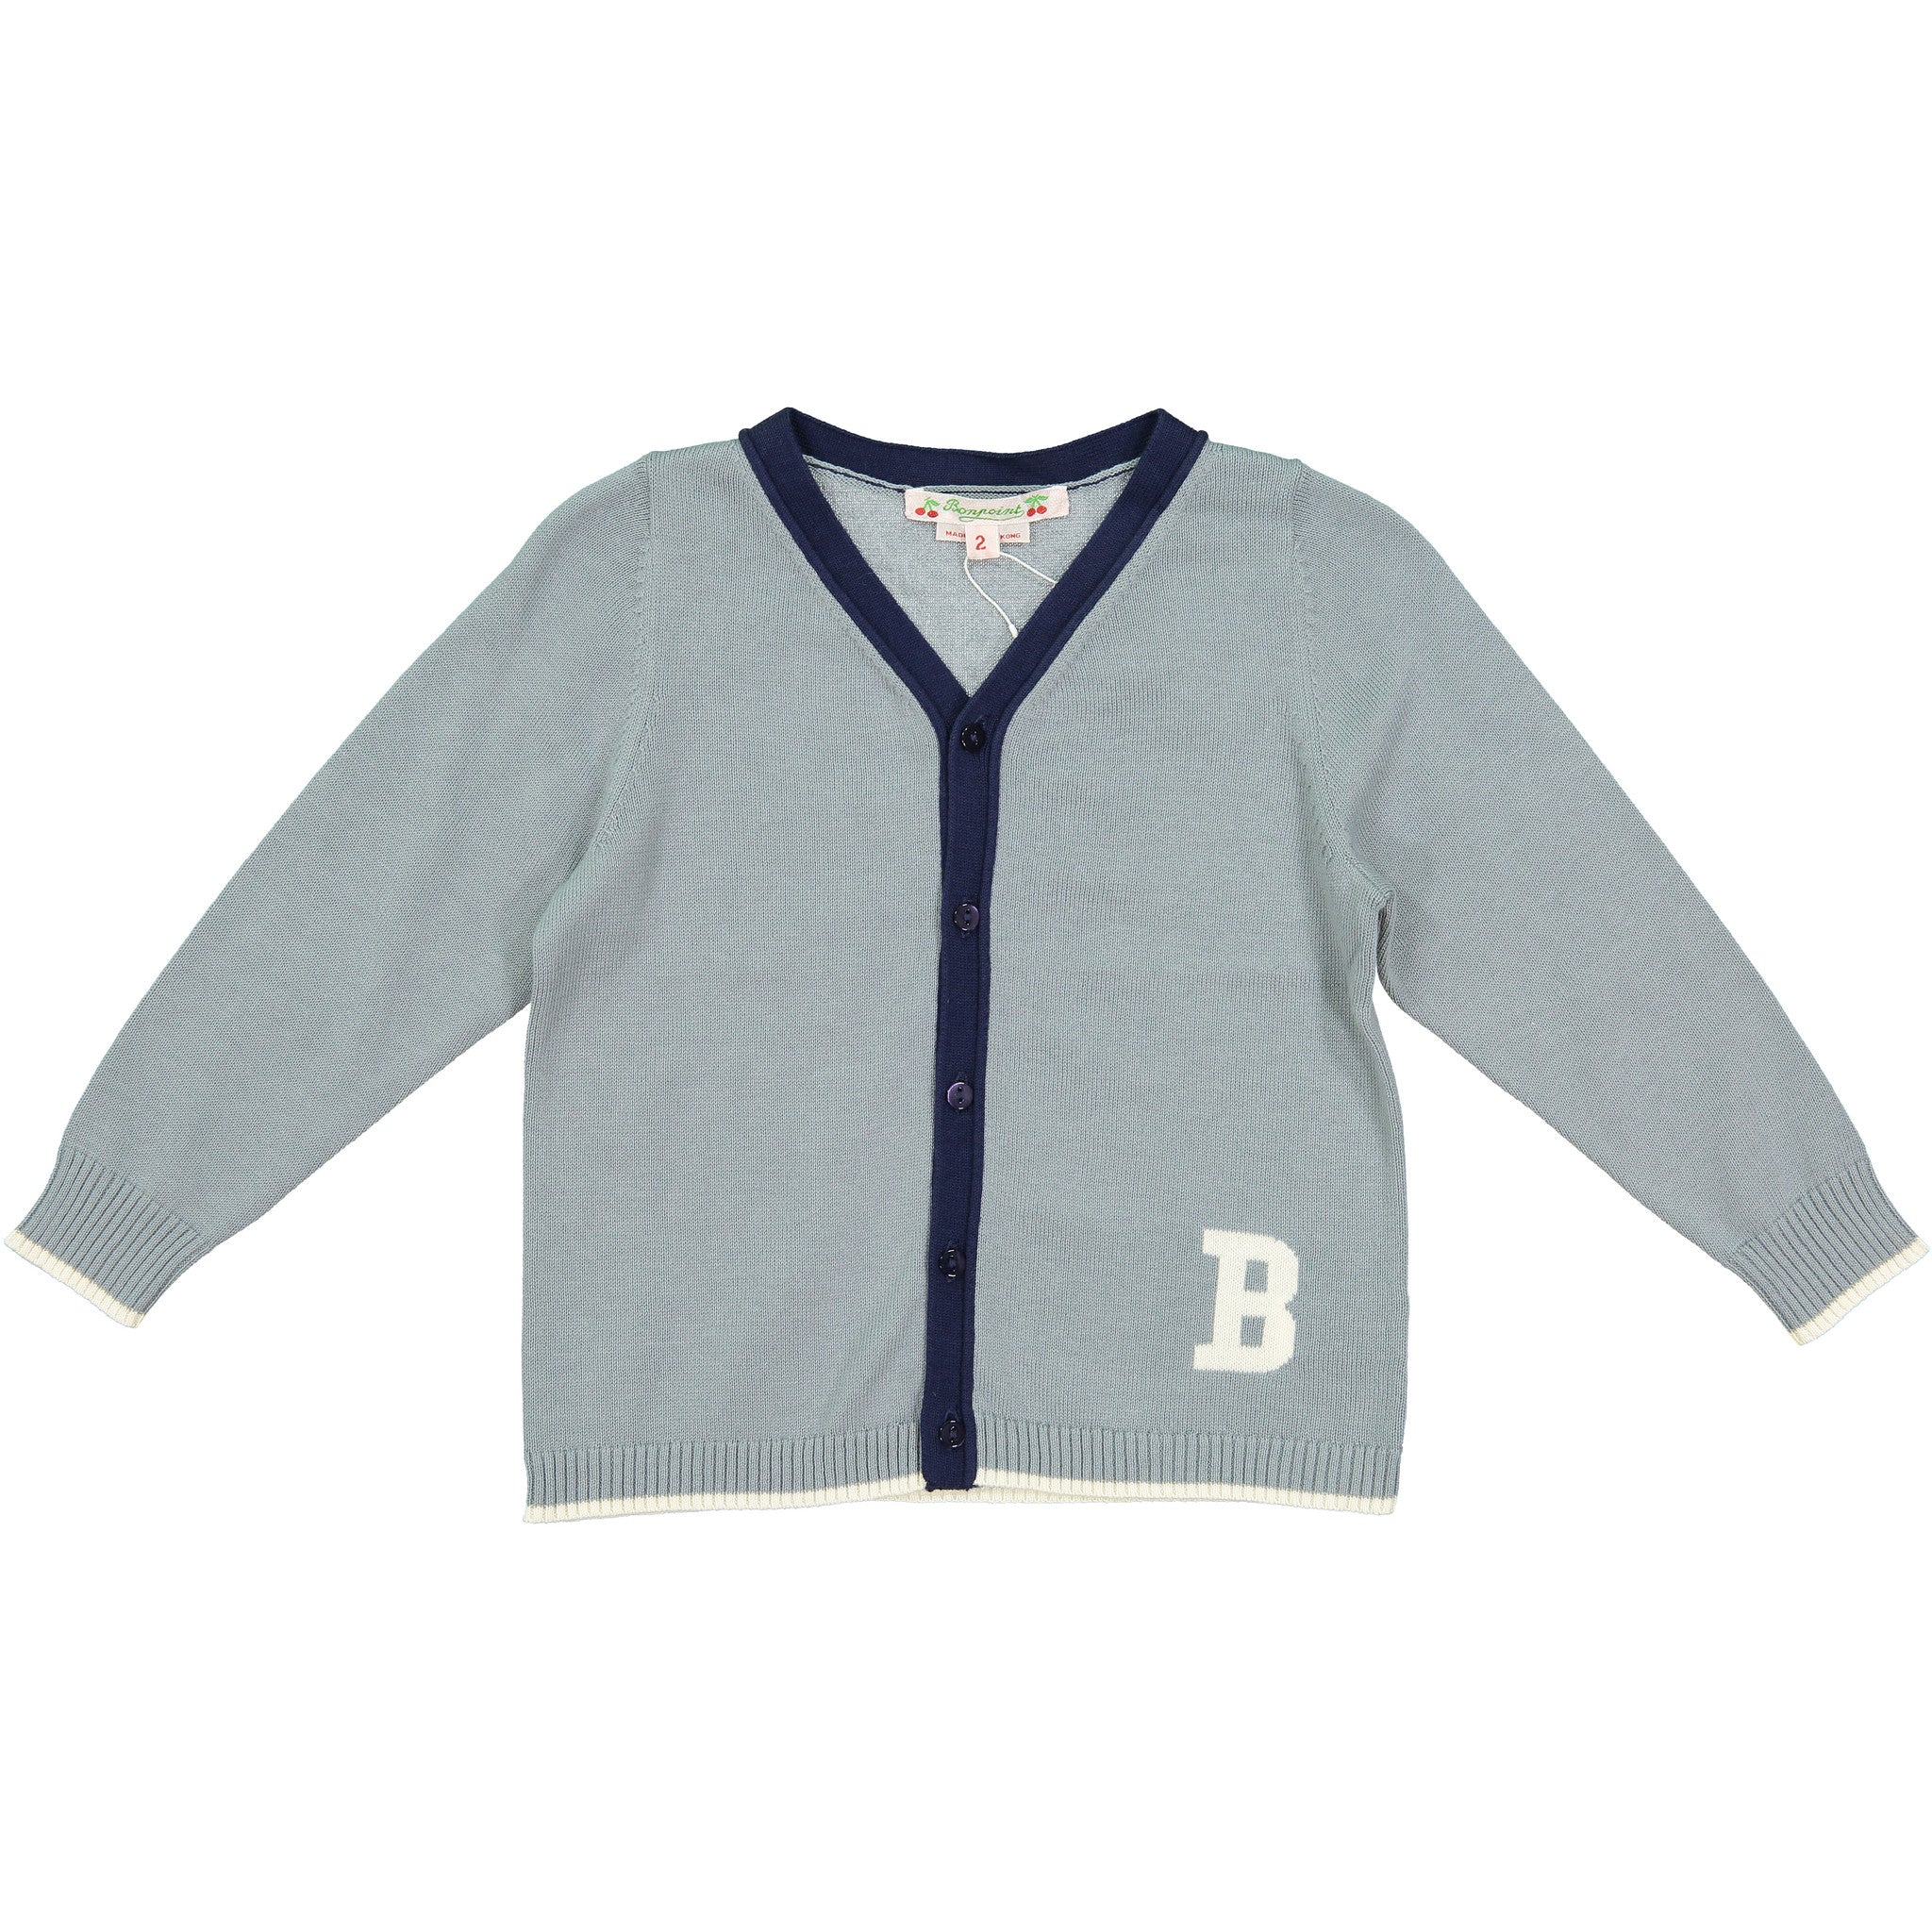 Bonpoint Blue B Logo Cardigan - Ladida